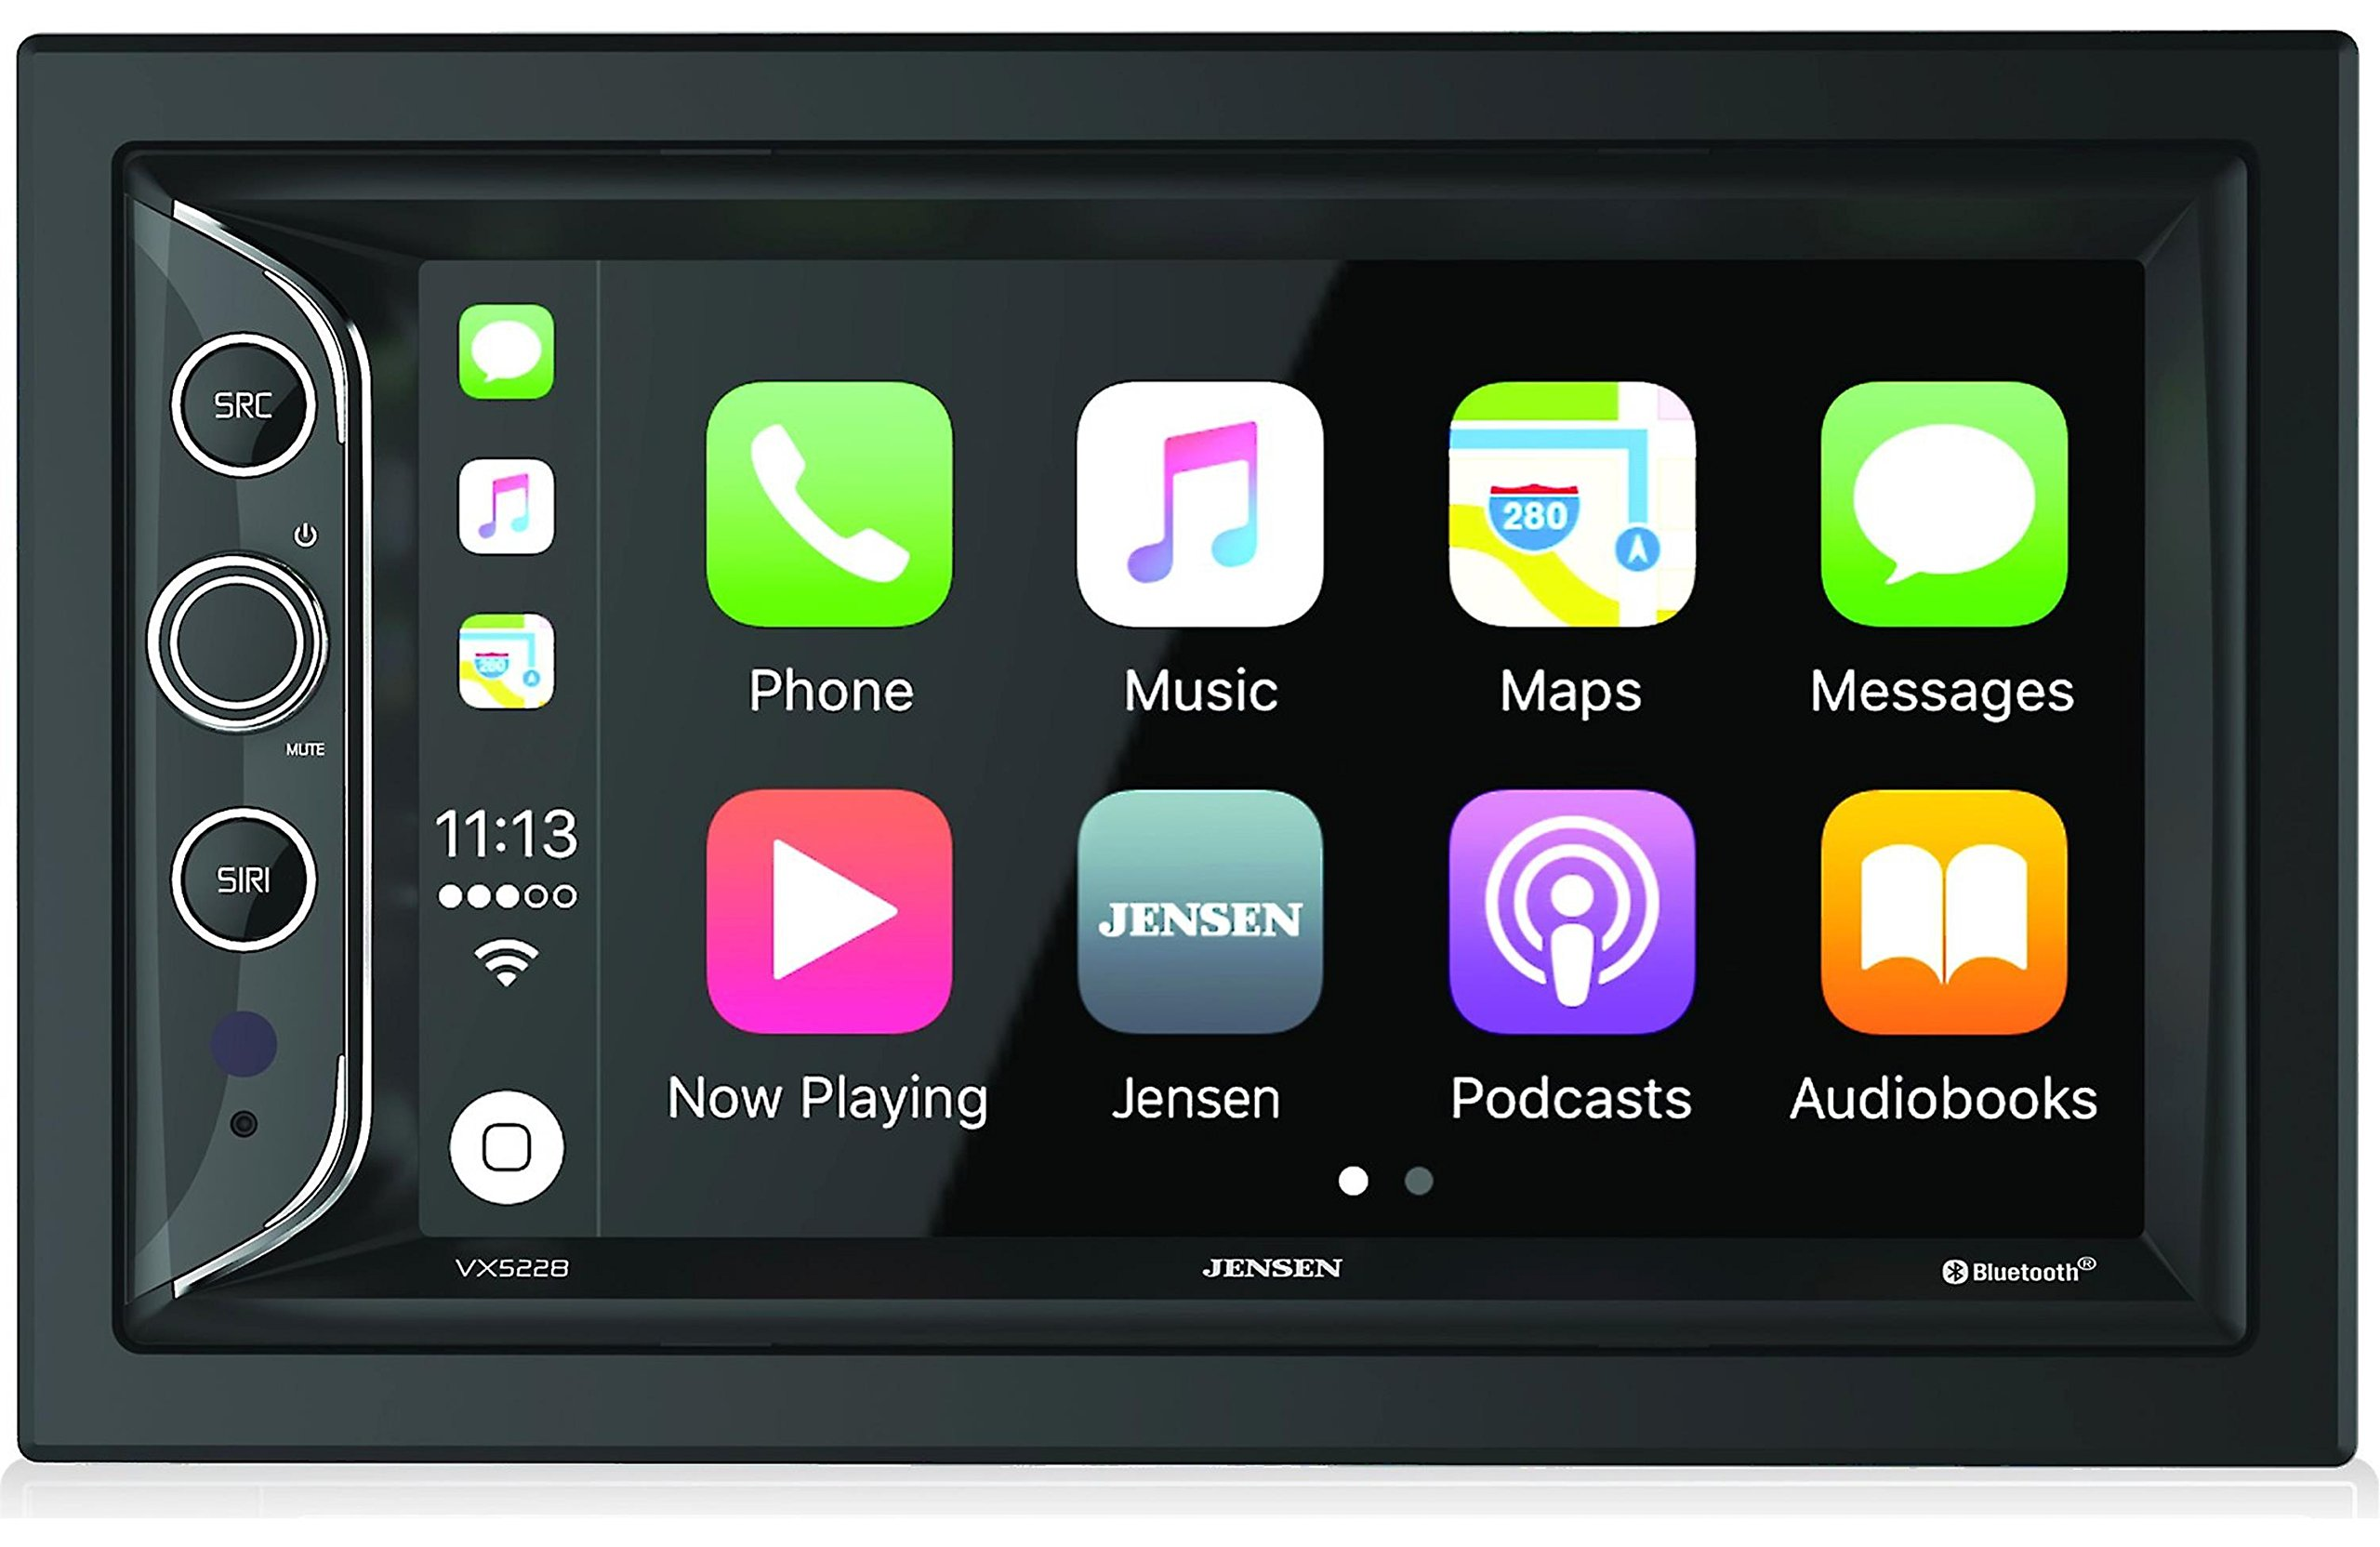 Jensen VX5228 6.2'' LED Backlit LCD Digital Multimedia Touch Screen Double DIN Car Stereo with Built-In Apple CarPlay, Bluetooth & USB Port